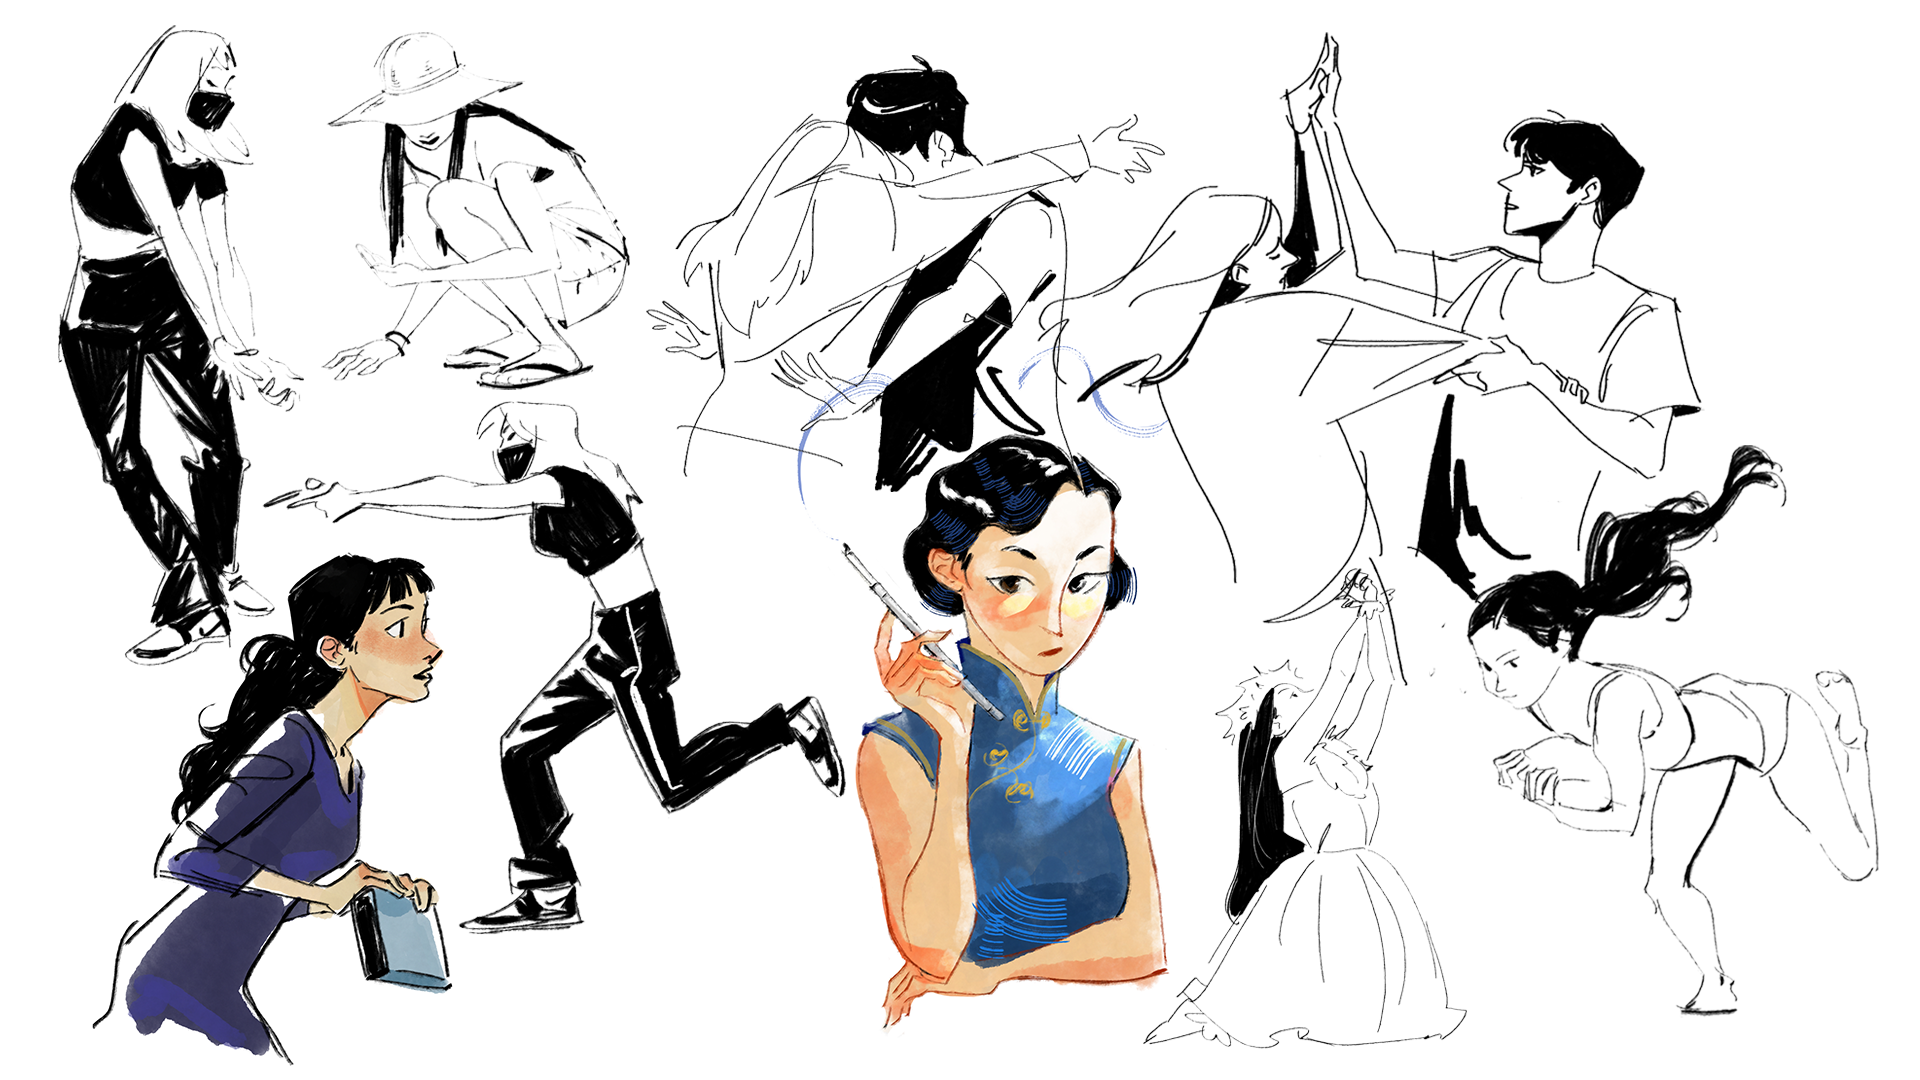 A series of character sketches.